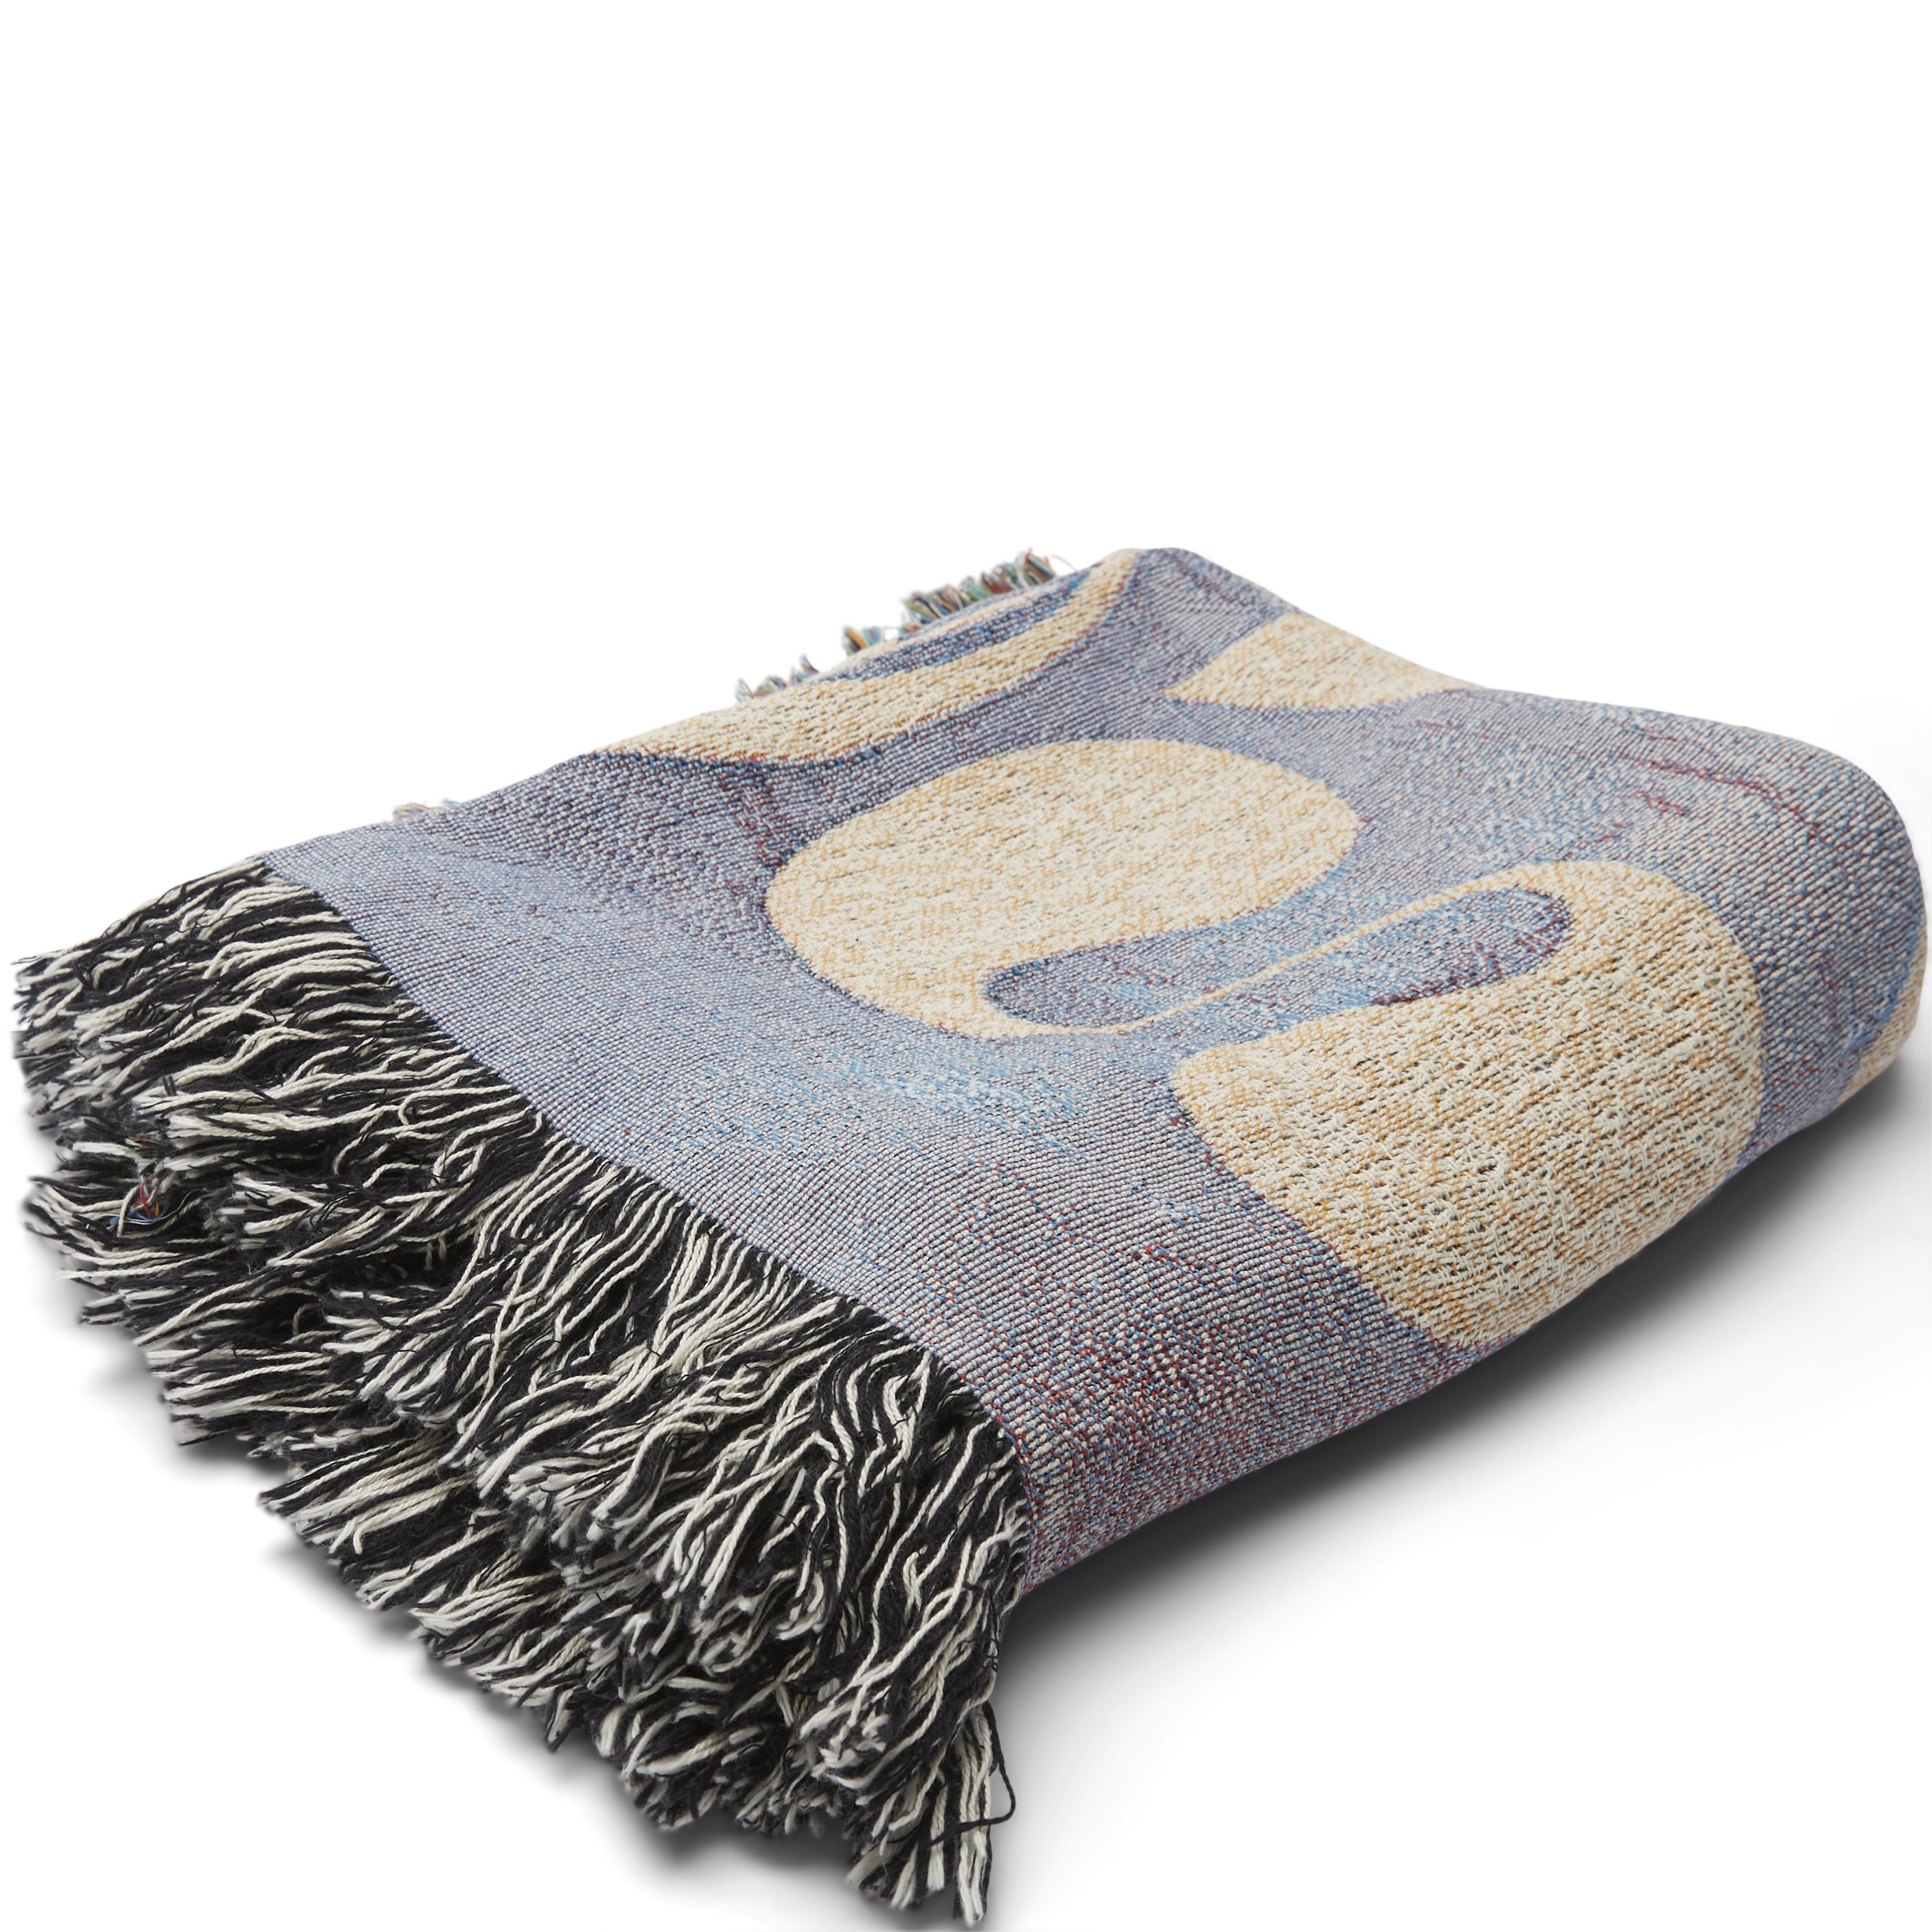 For Daily Use Blanket - Accessories - Army